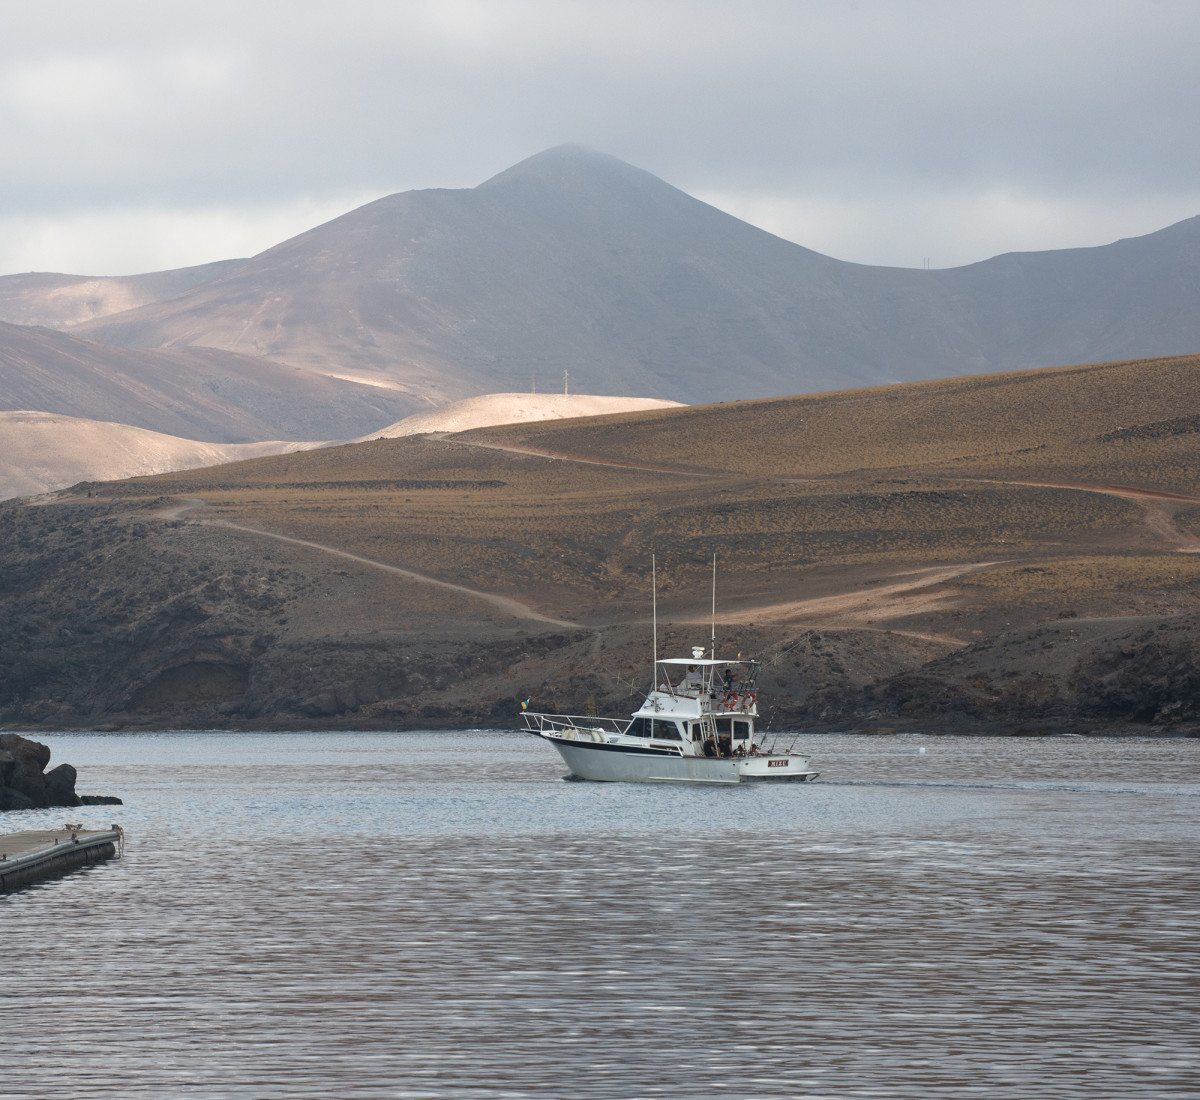 The local Lanzarote charter boat heads out of the Calero Marina early one morning.